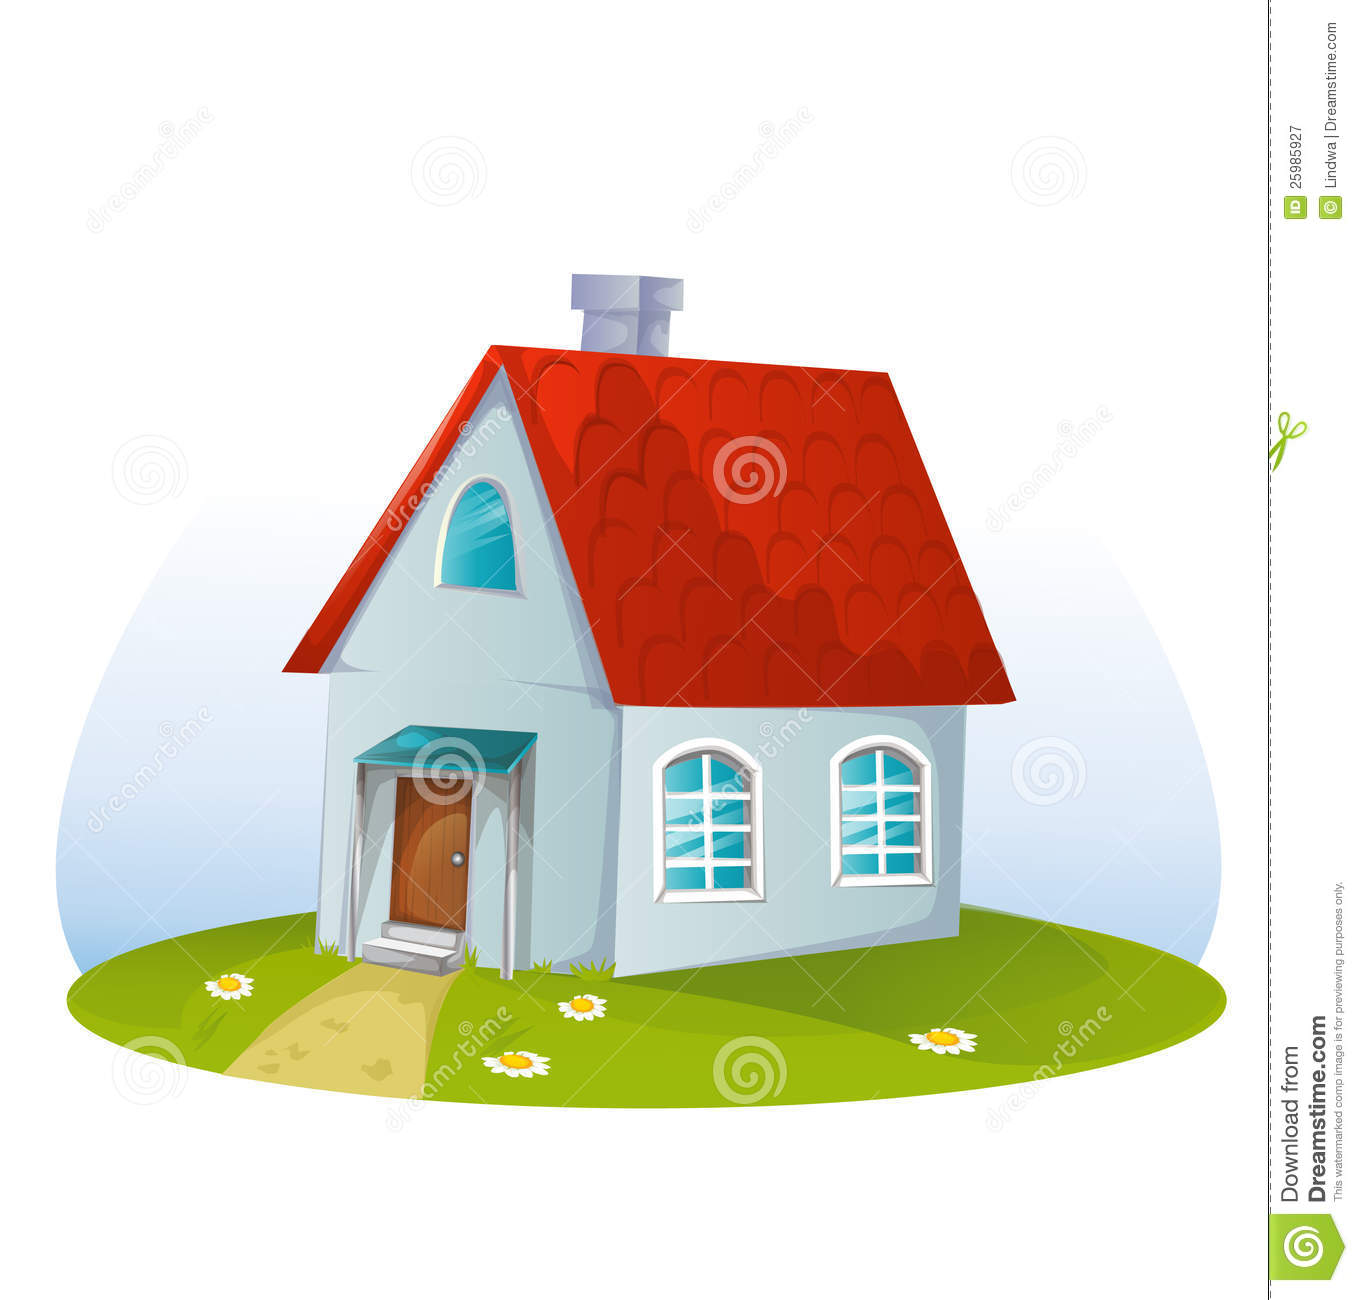 Cartoon House Royalty Free Stock Photography - Image: 25985927